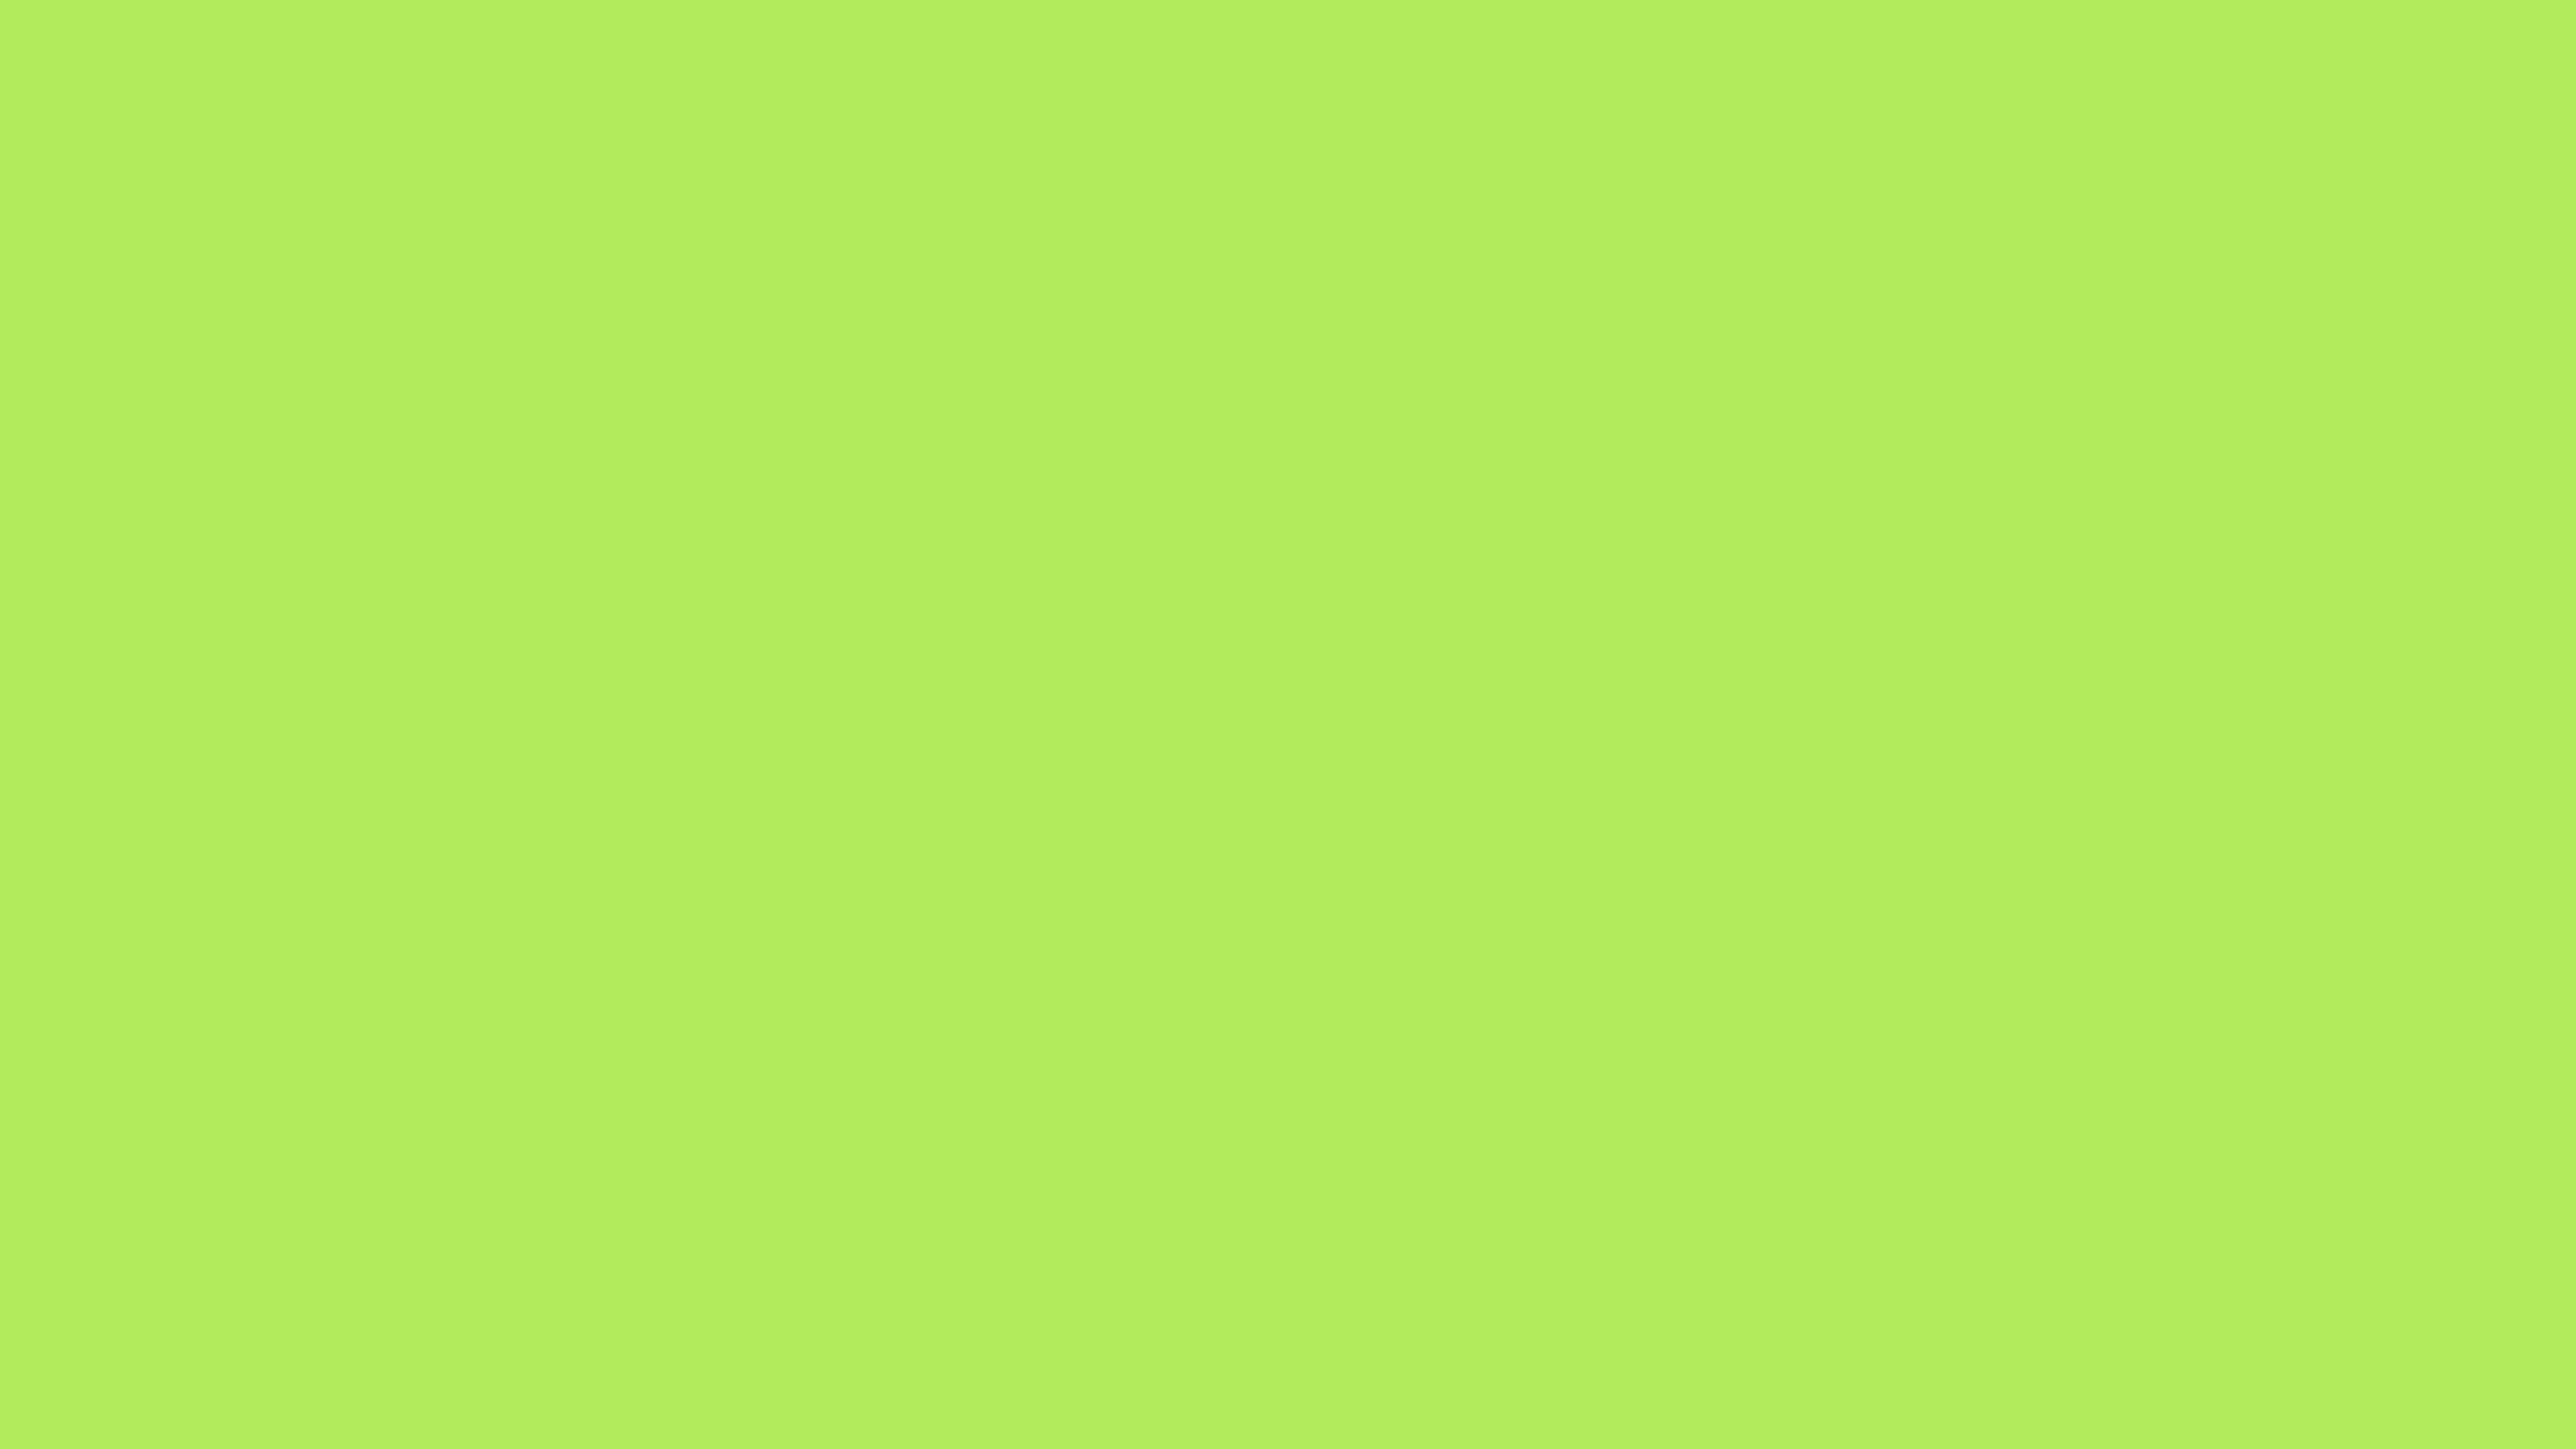 3840x2160 Inchworm Solid Color Background